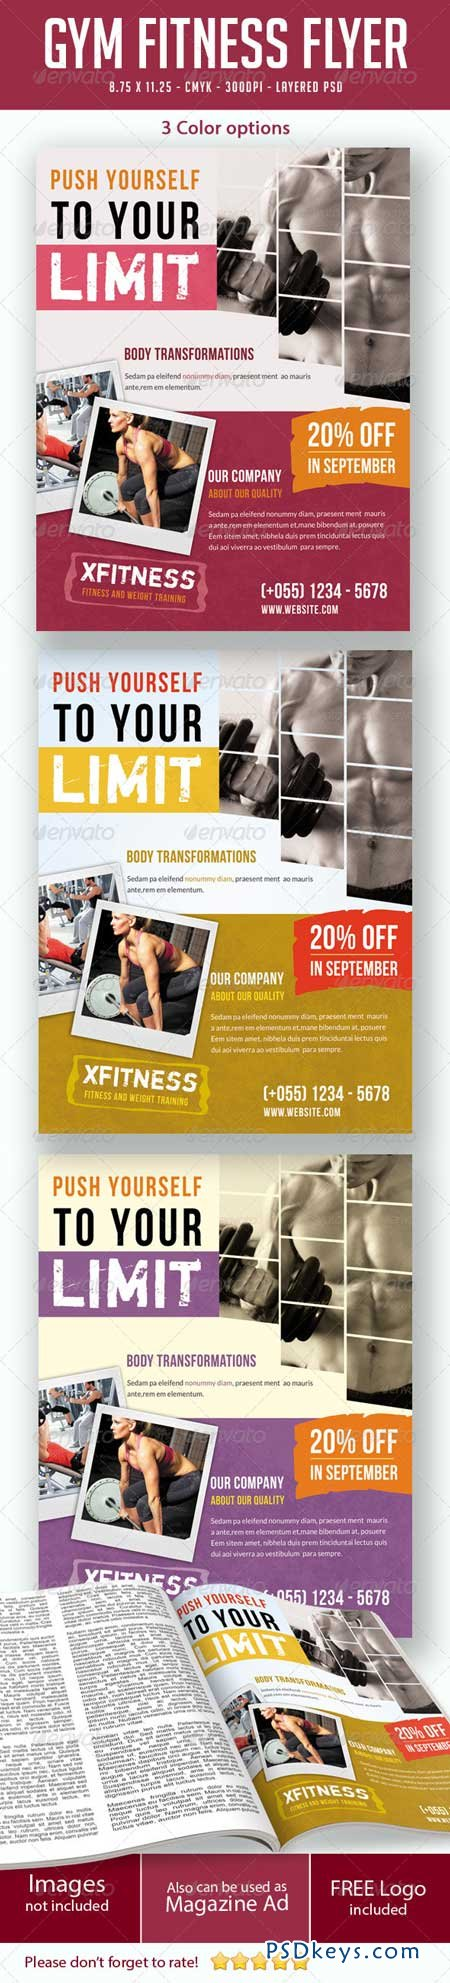 Gym Fitness Flyers